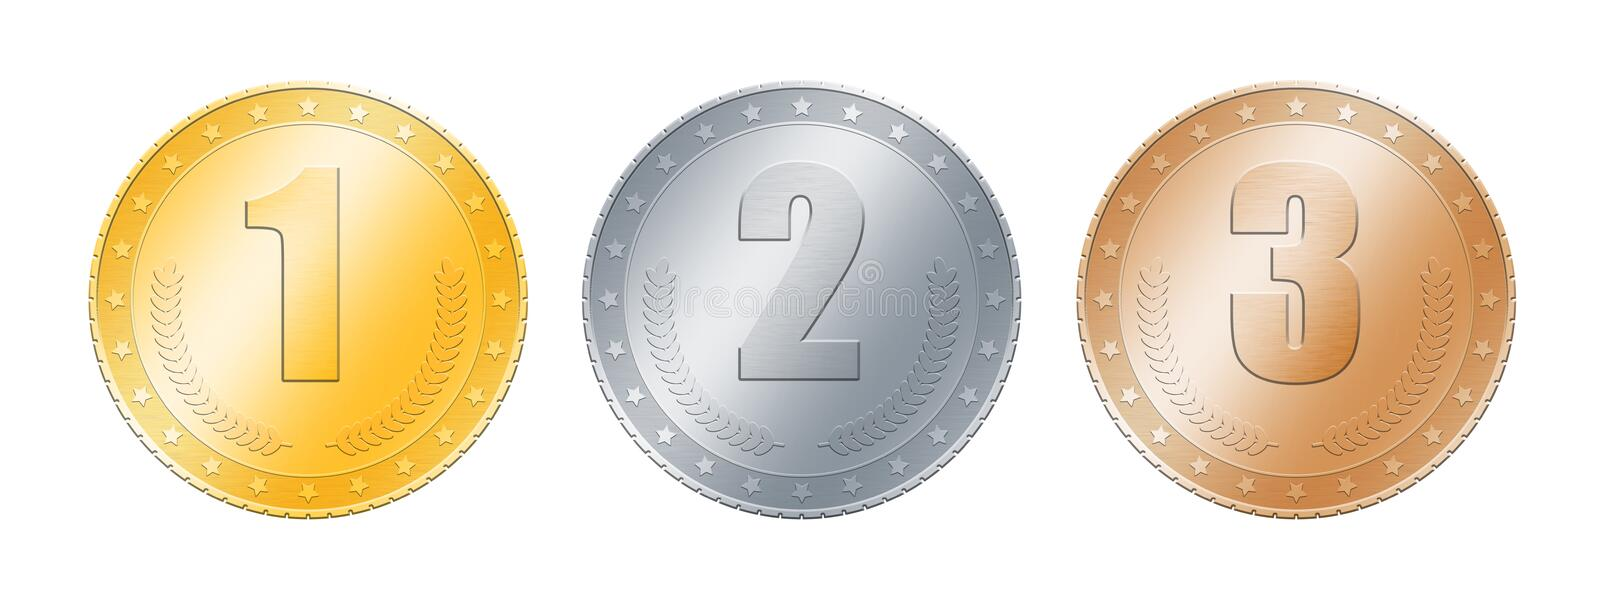 Gold, silver, bronze coins or medals over white. Close up metal gold, silver and bronze blank coins or medals template or award achievement badges with one, two vector illustration